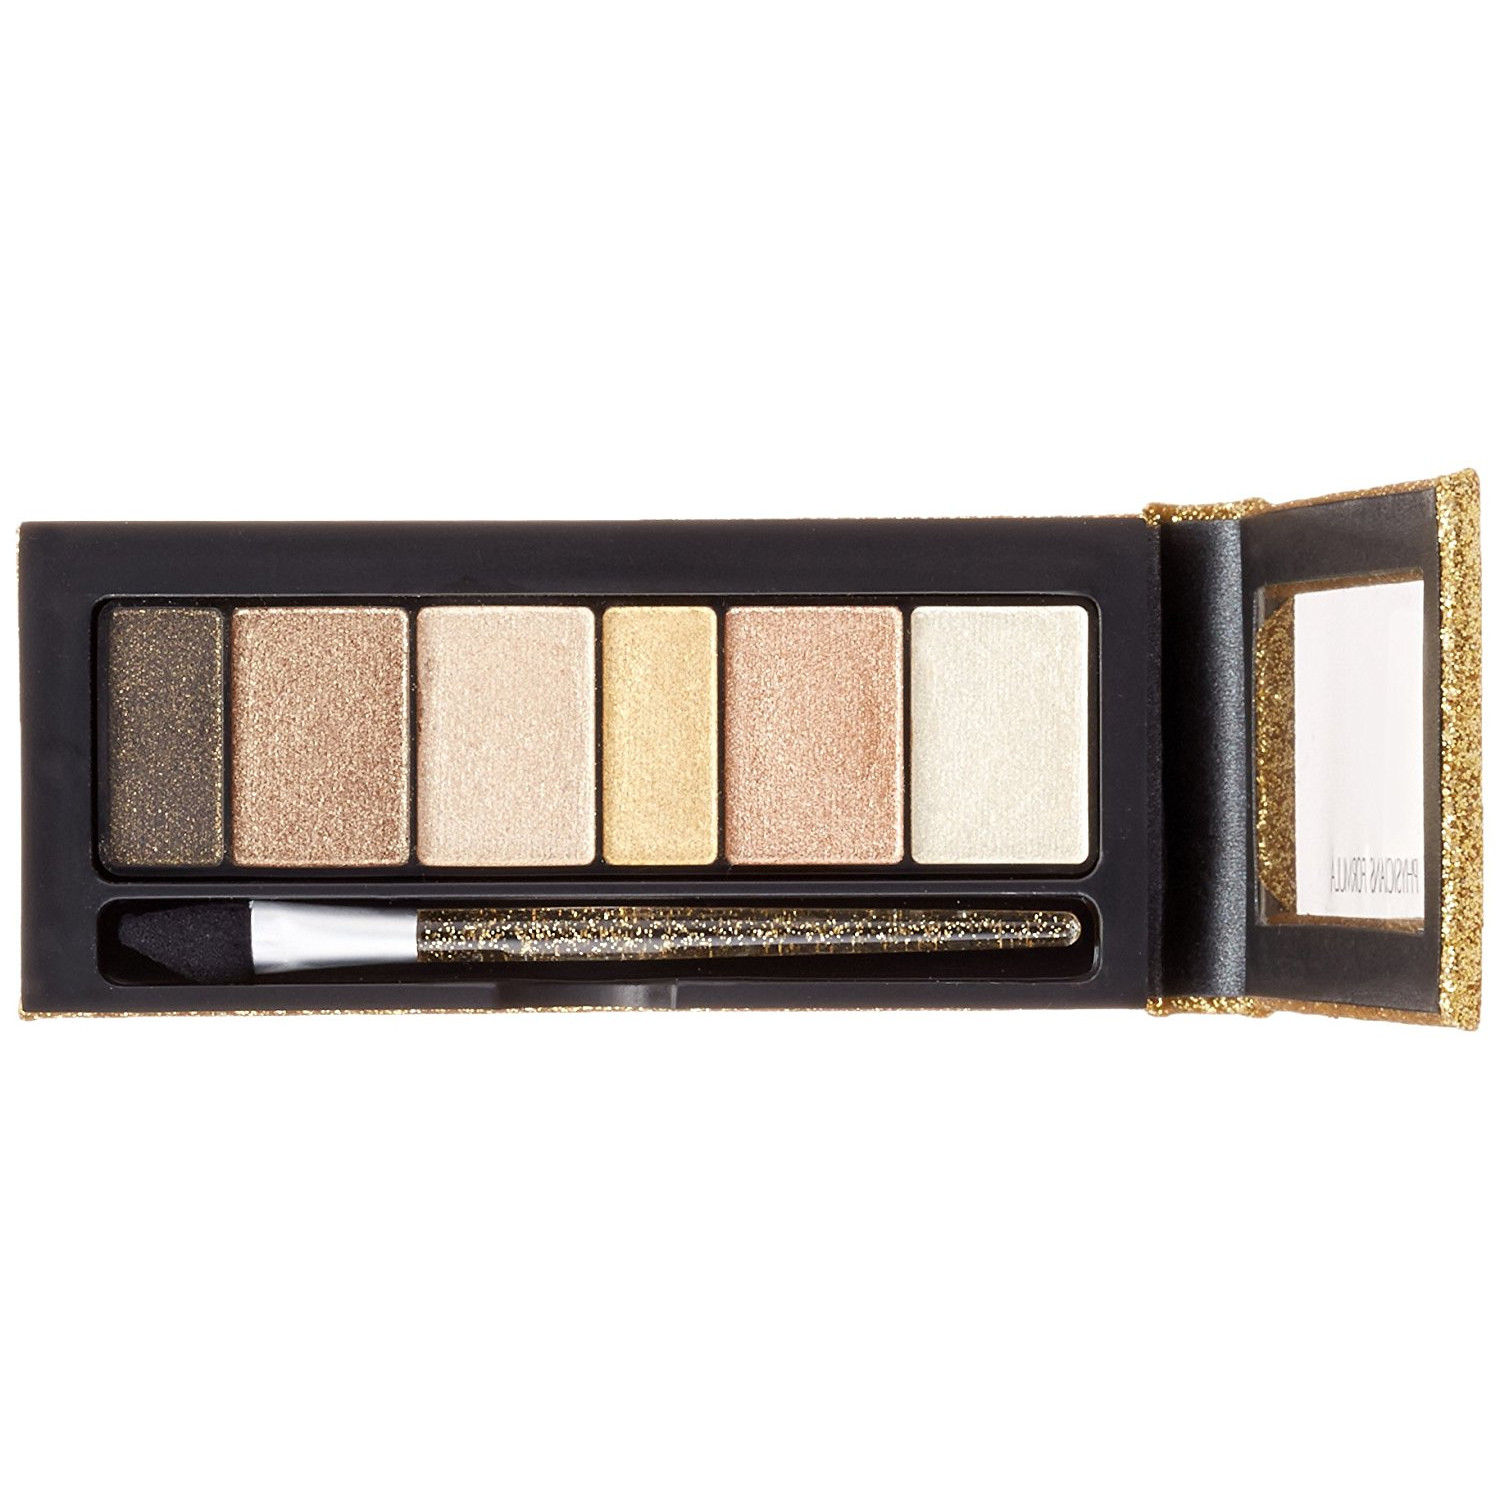 Physicians Formula Shimmer Strips Custom Eye Enhancing Extreme Shimmer Shadow & Liner Disco Glam - Gold Nude